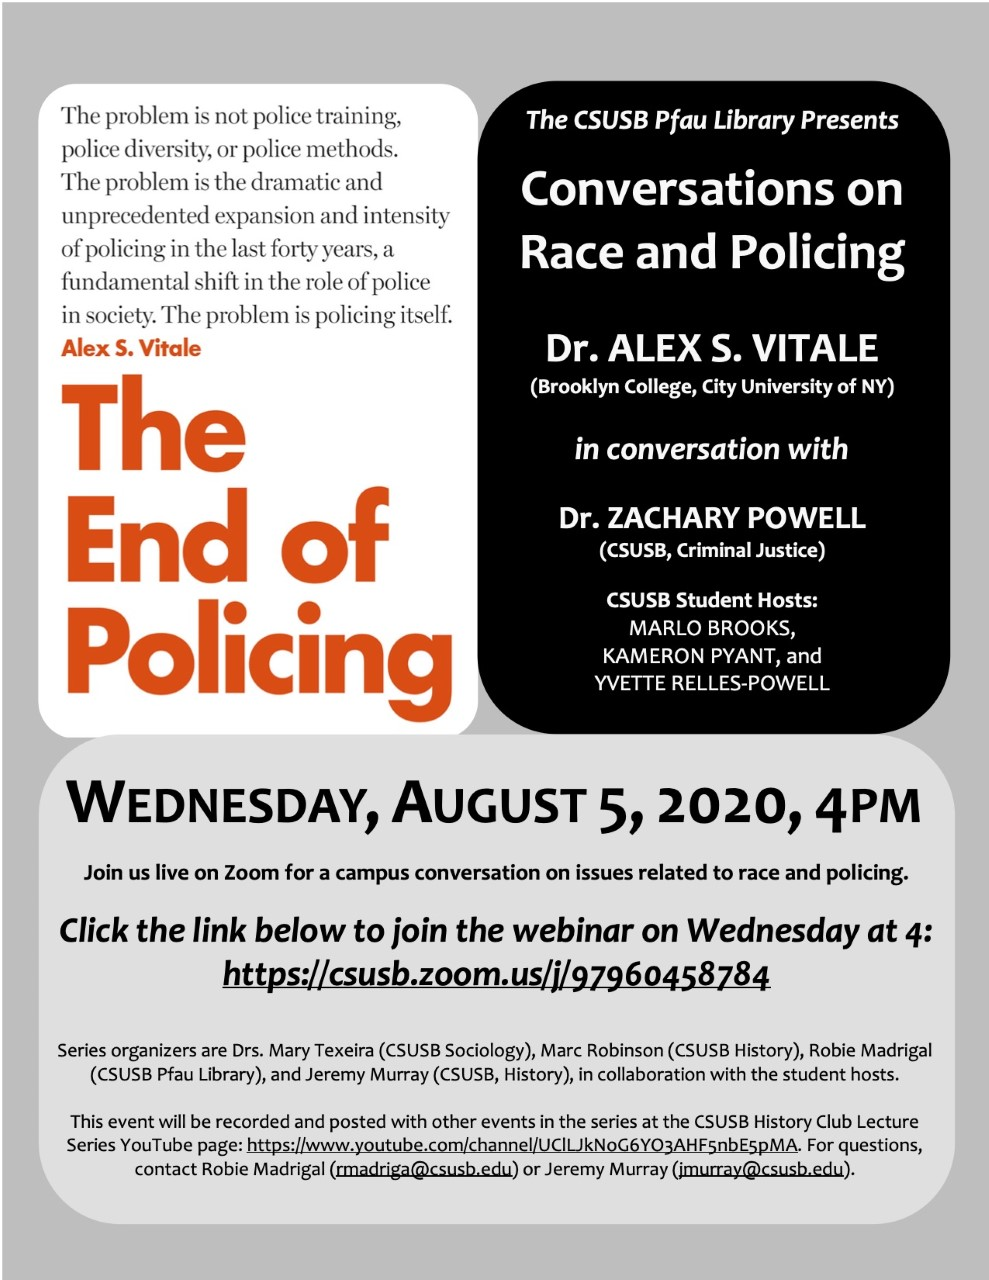 Flyer: Sociologist Alex S. Vitale featured at next Conversations on Race and Policing on Aug. 5